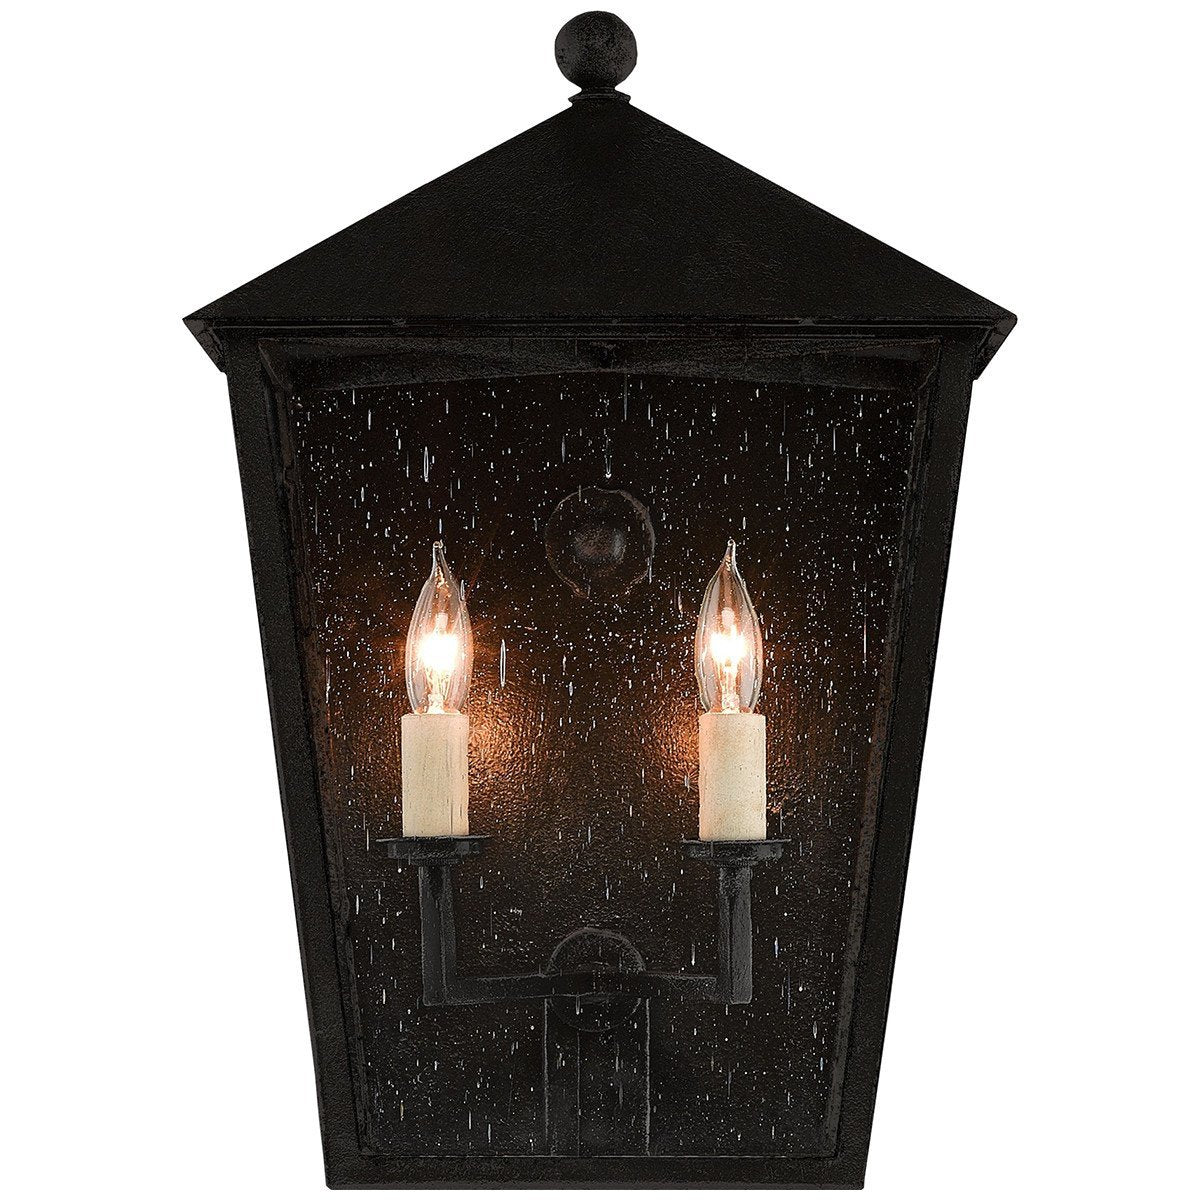 Currey and Company Bening Outdoor Wall Sconce - 2 Bulb